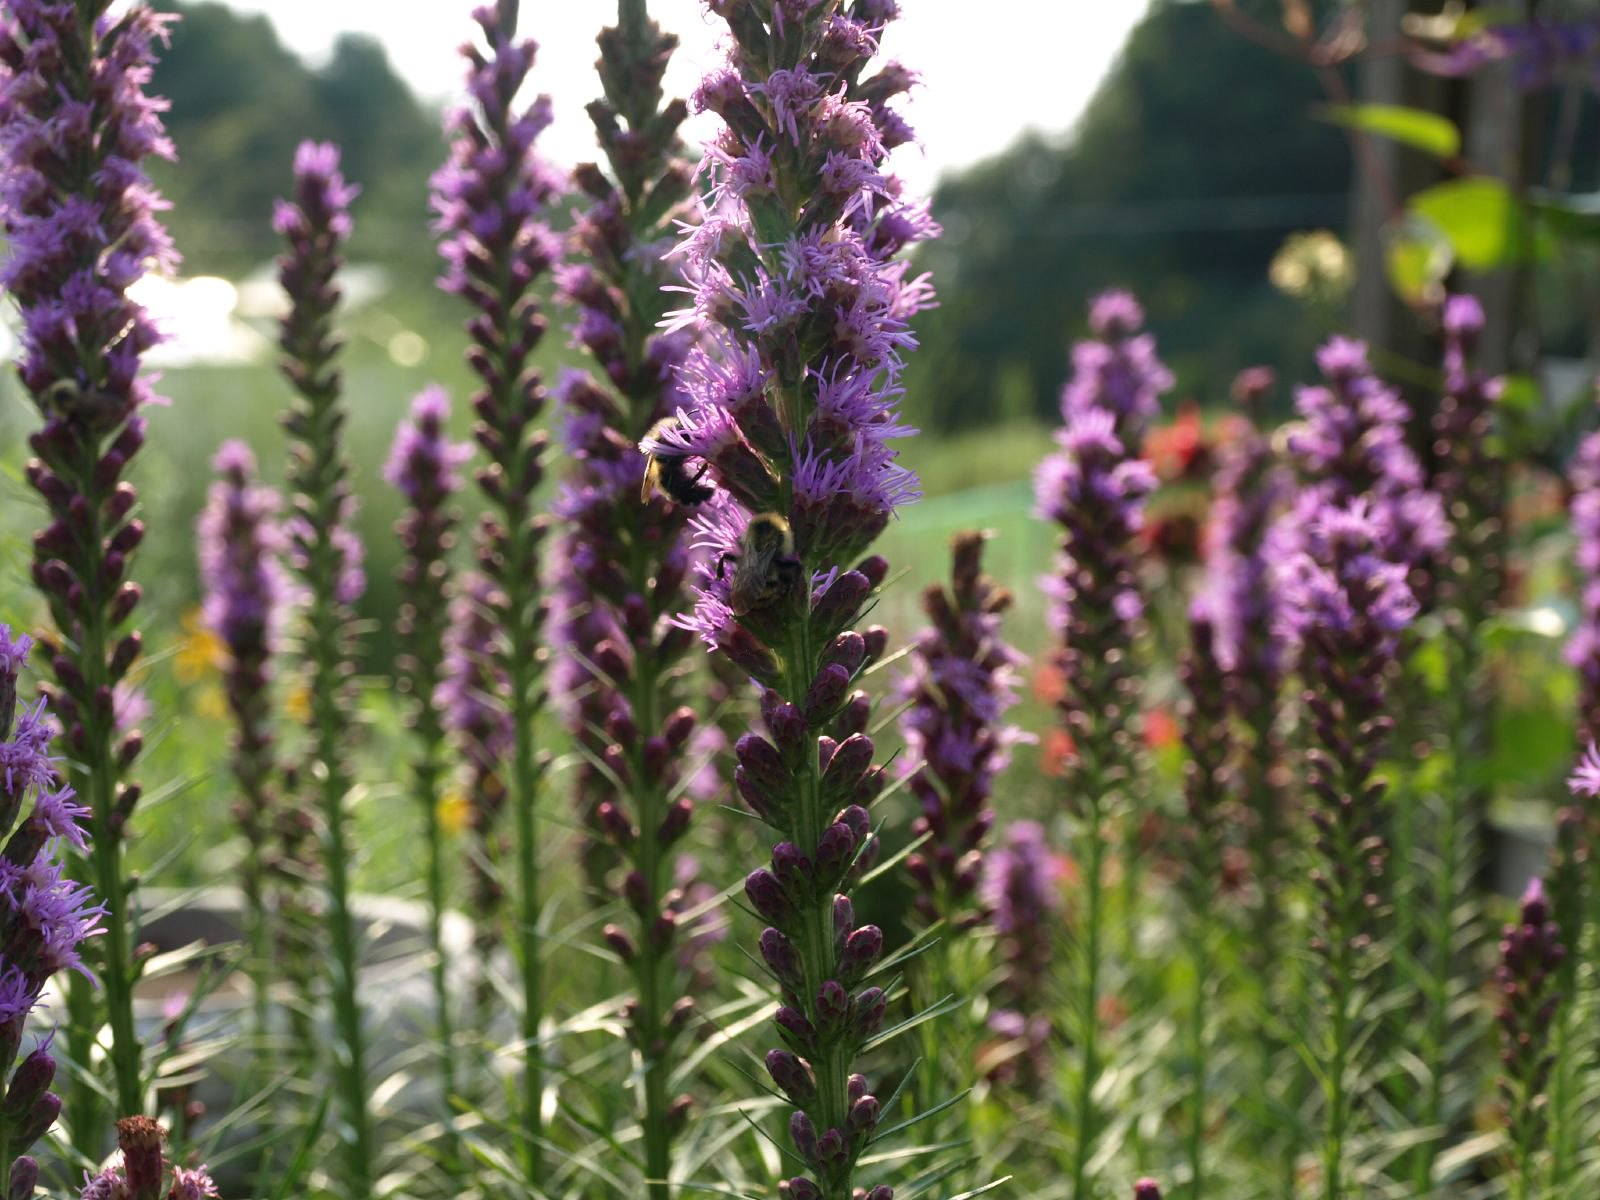 Liatris - One of the South Florida Flowers with the best colors